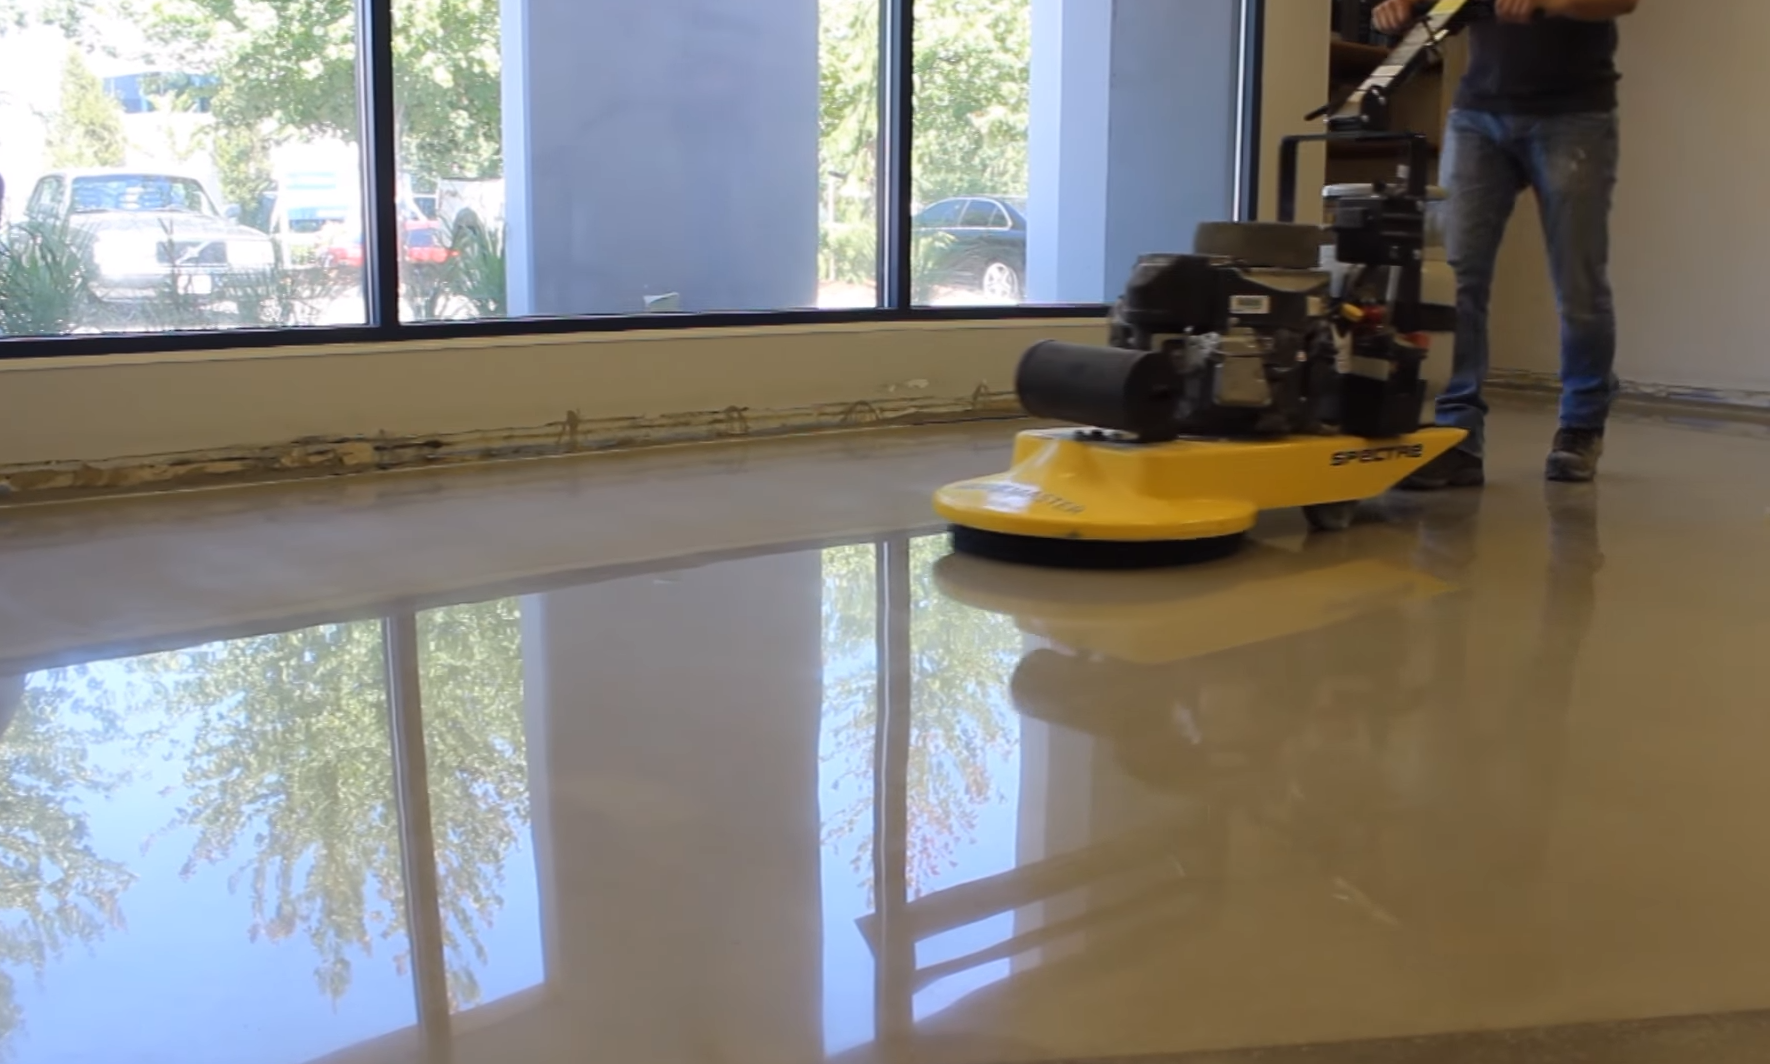 ARDEX Products: High Performance Flooring and Tiling Products